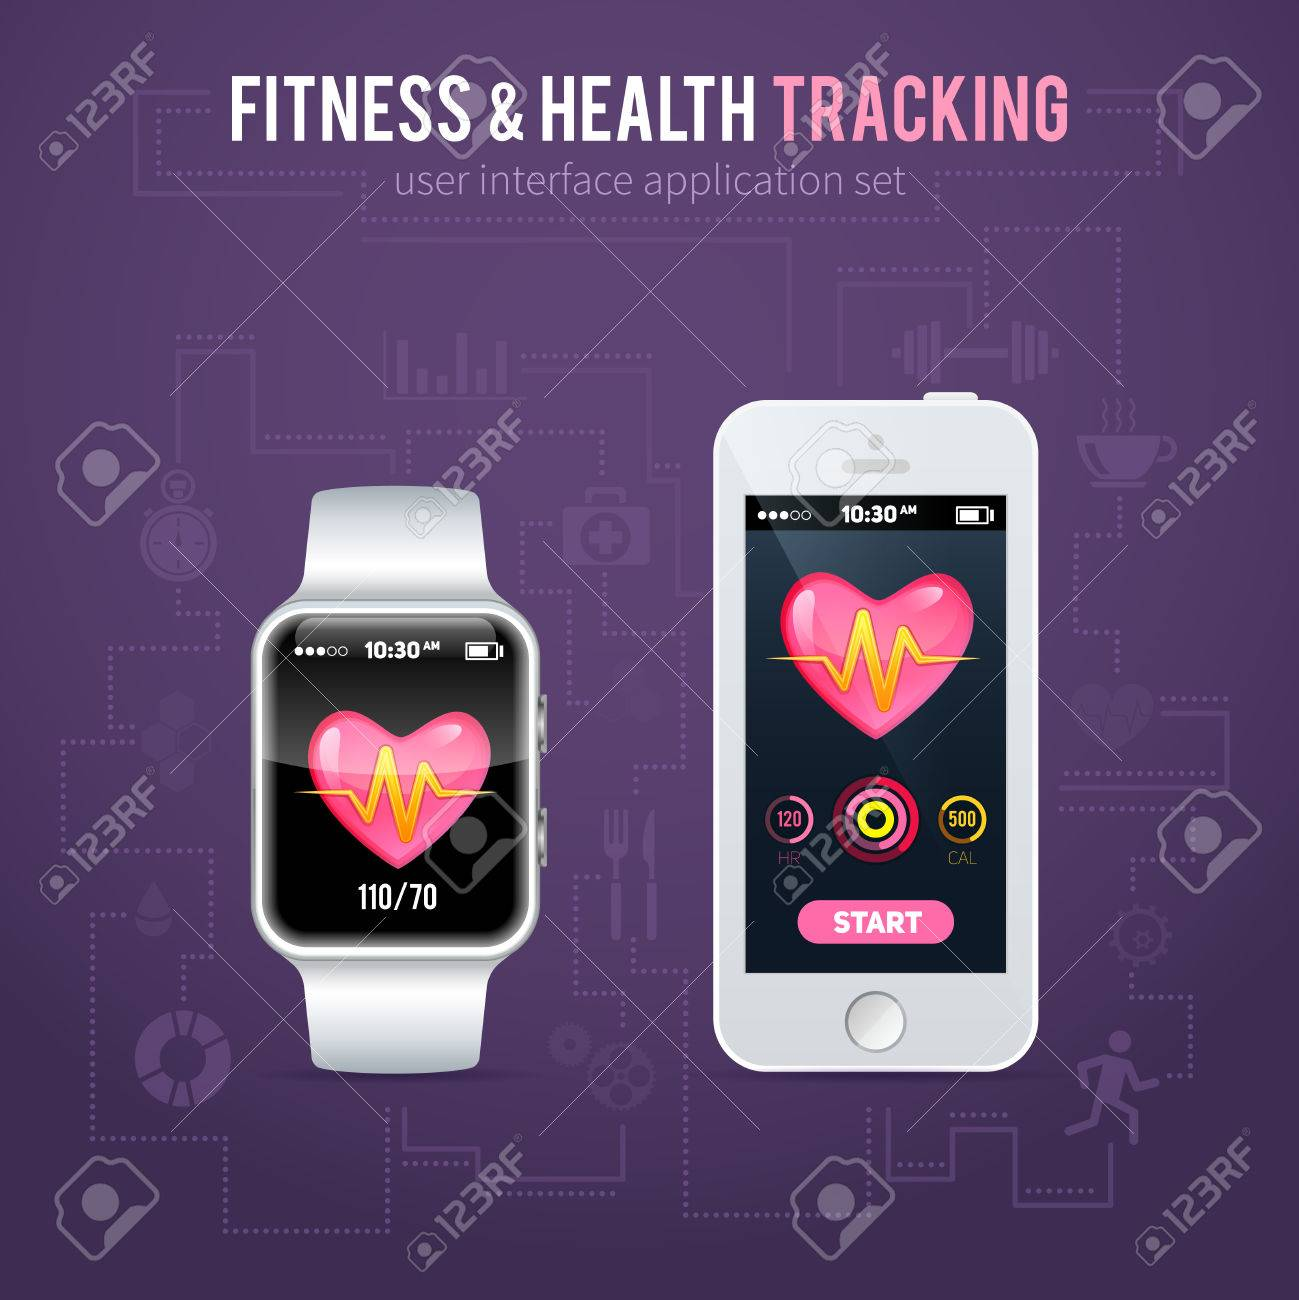 health fitness tracker application interface on realistic smart